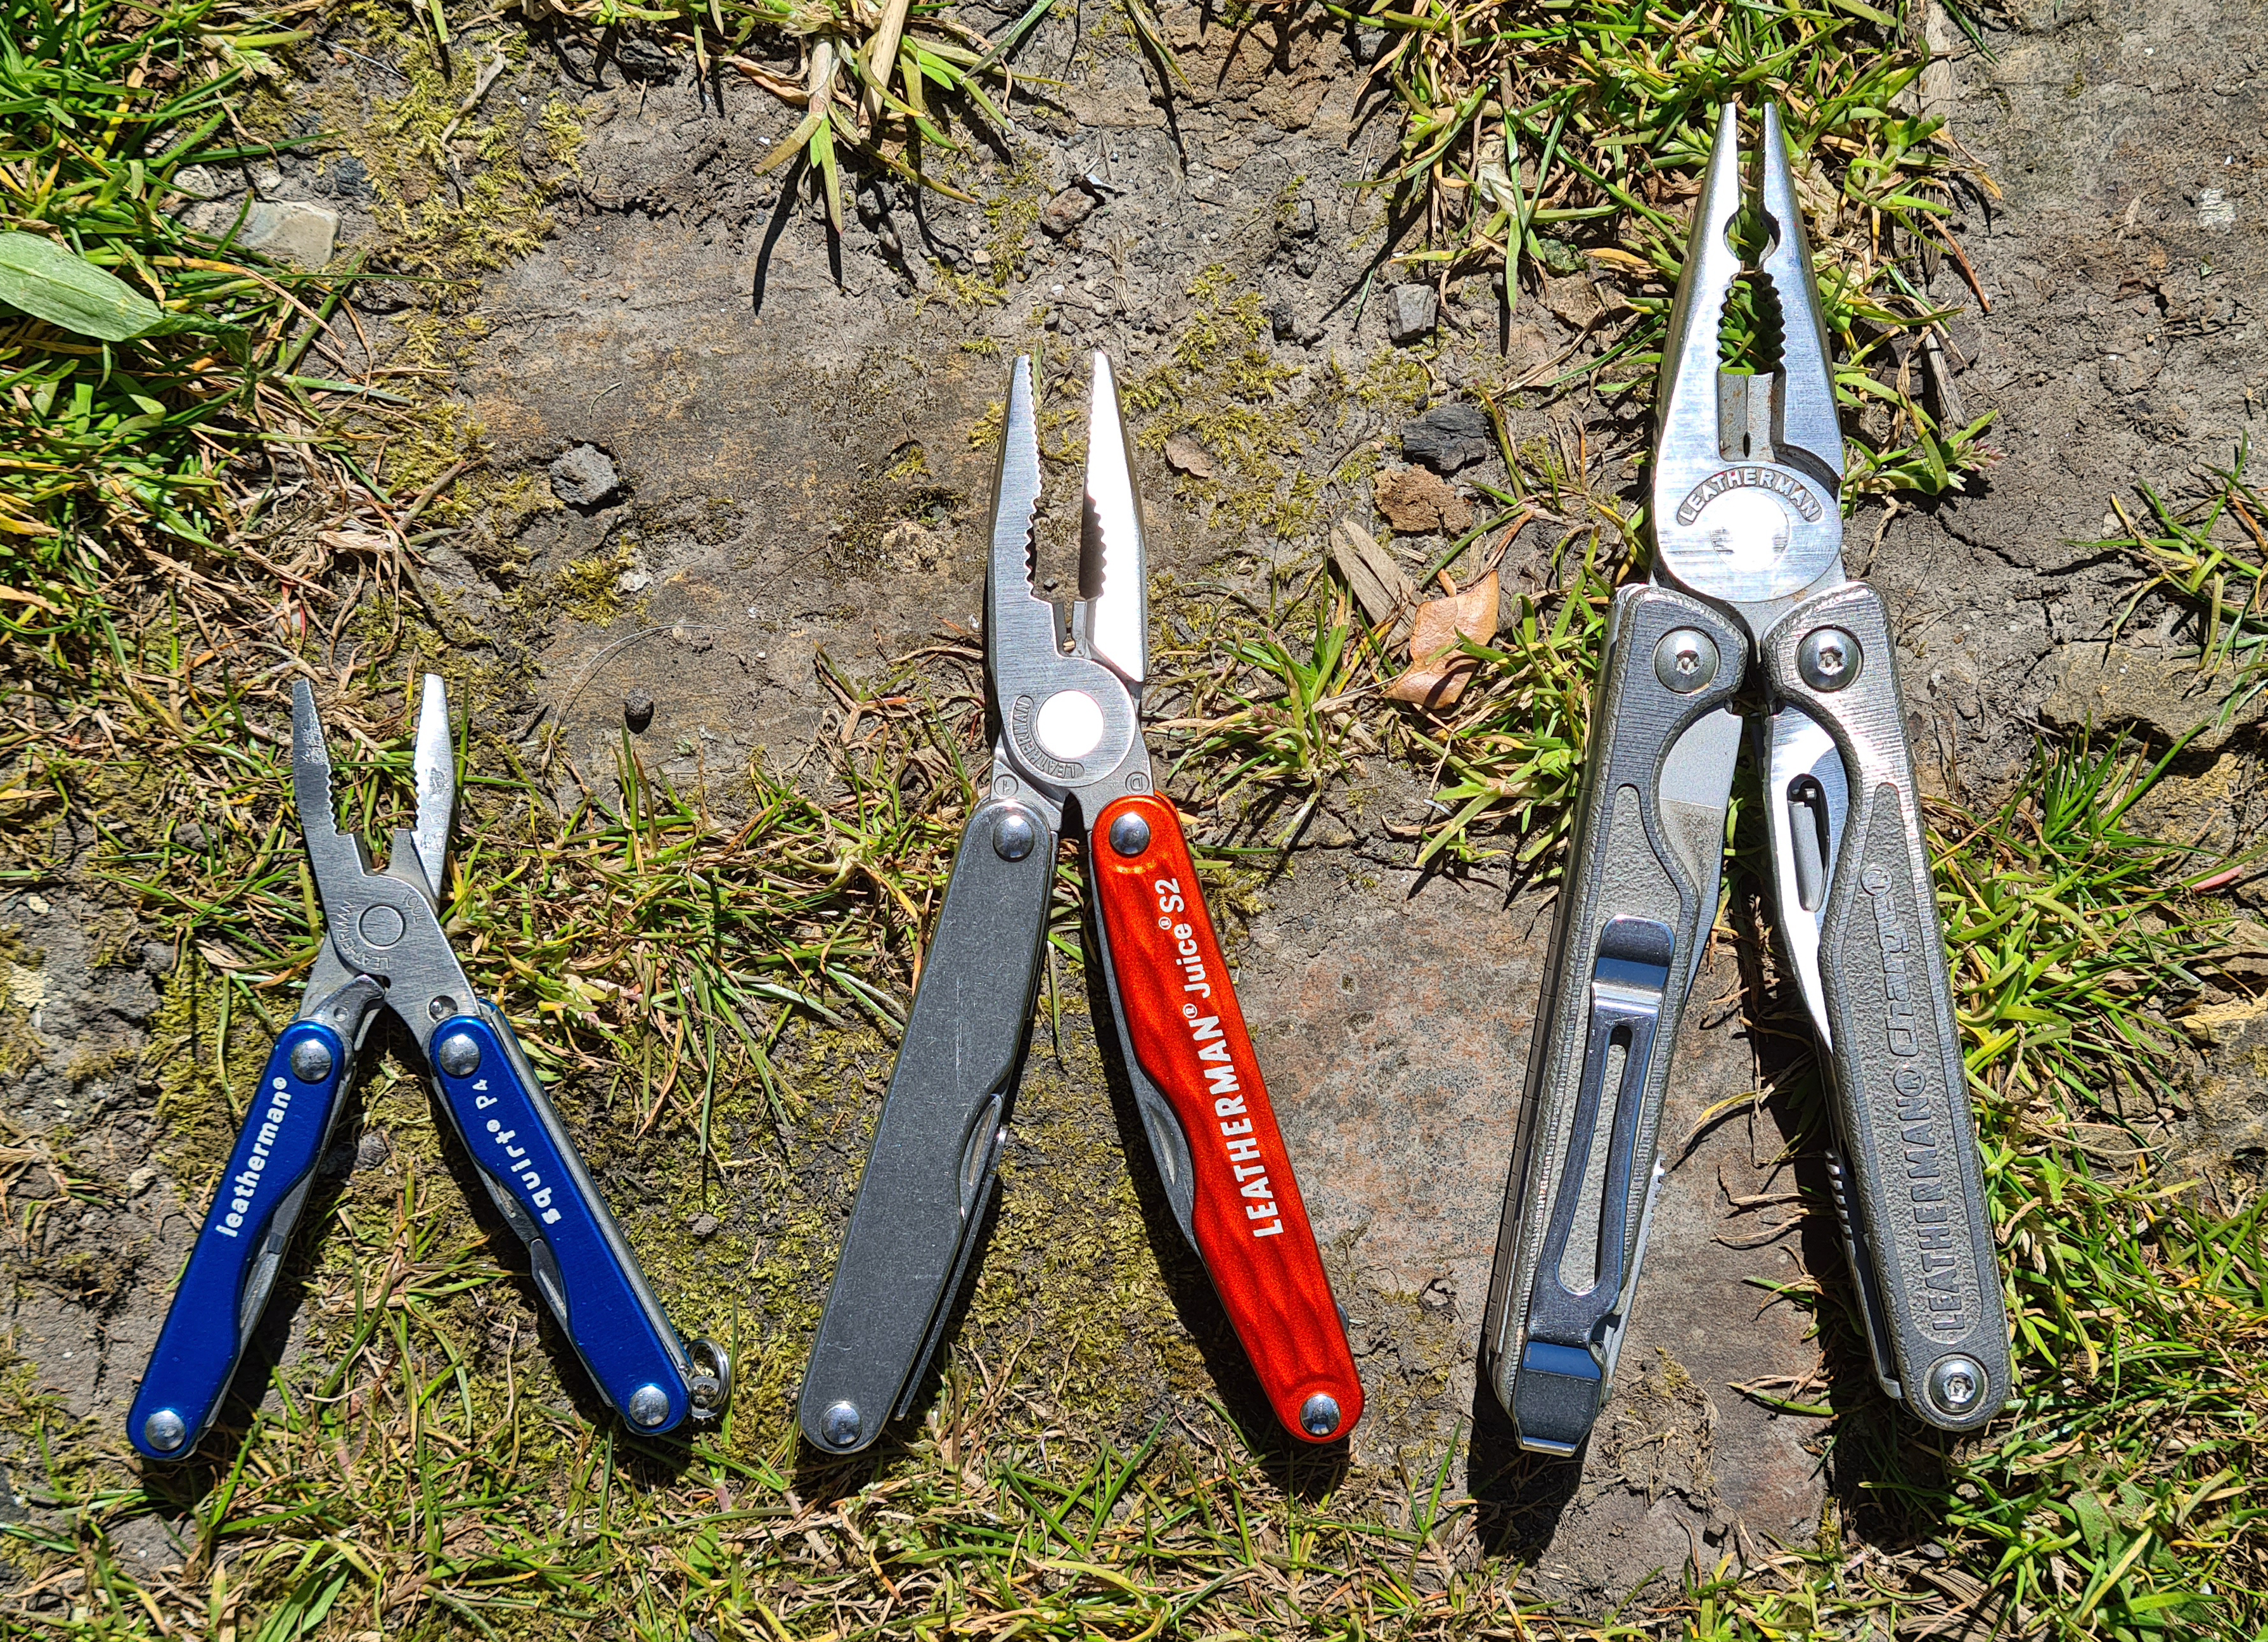 Three sizes of Leatherman multi-tools with plier tips- small 'keychain'  Squirt P4, 'Pocket-sized' Juice S2, 'heavy duty' Charge